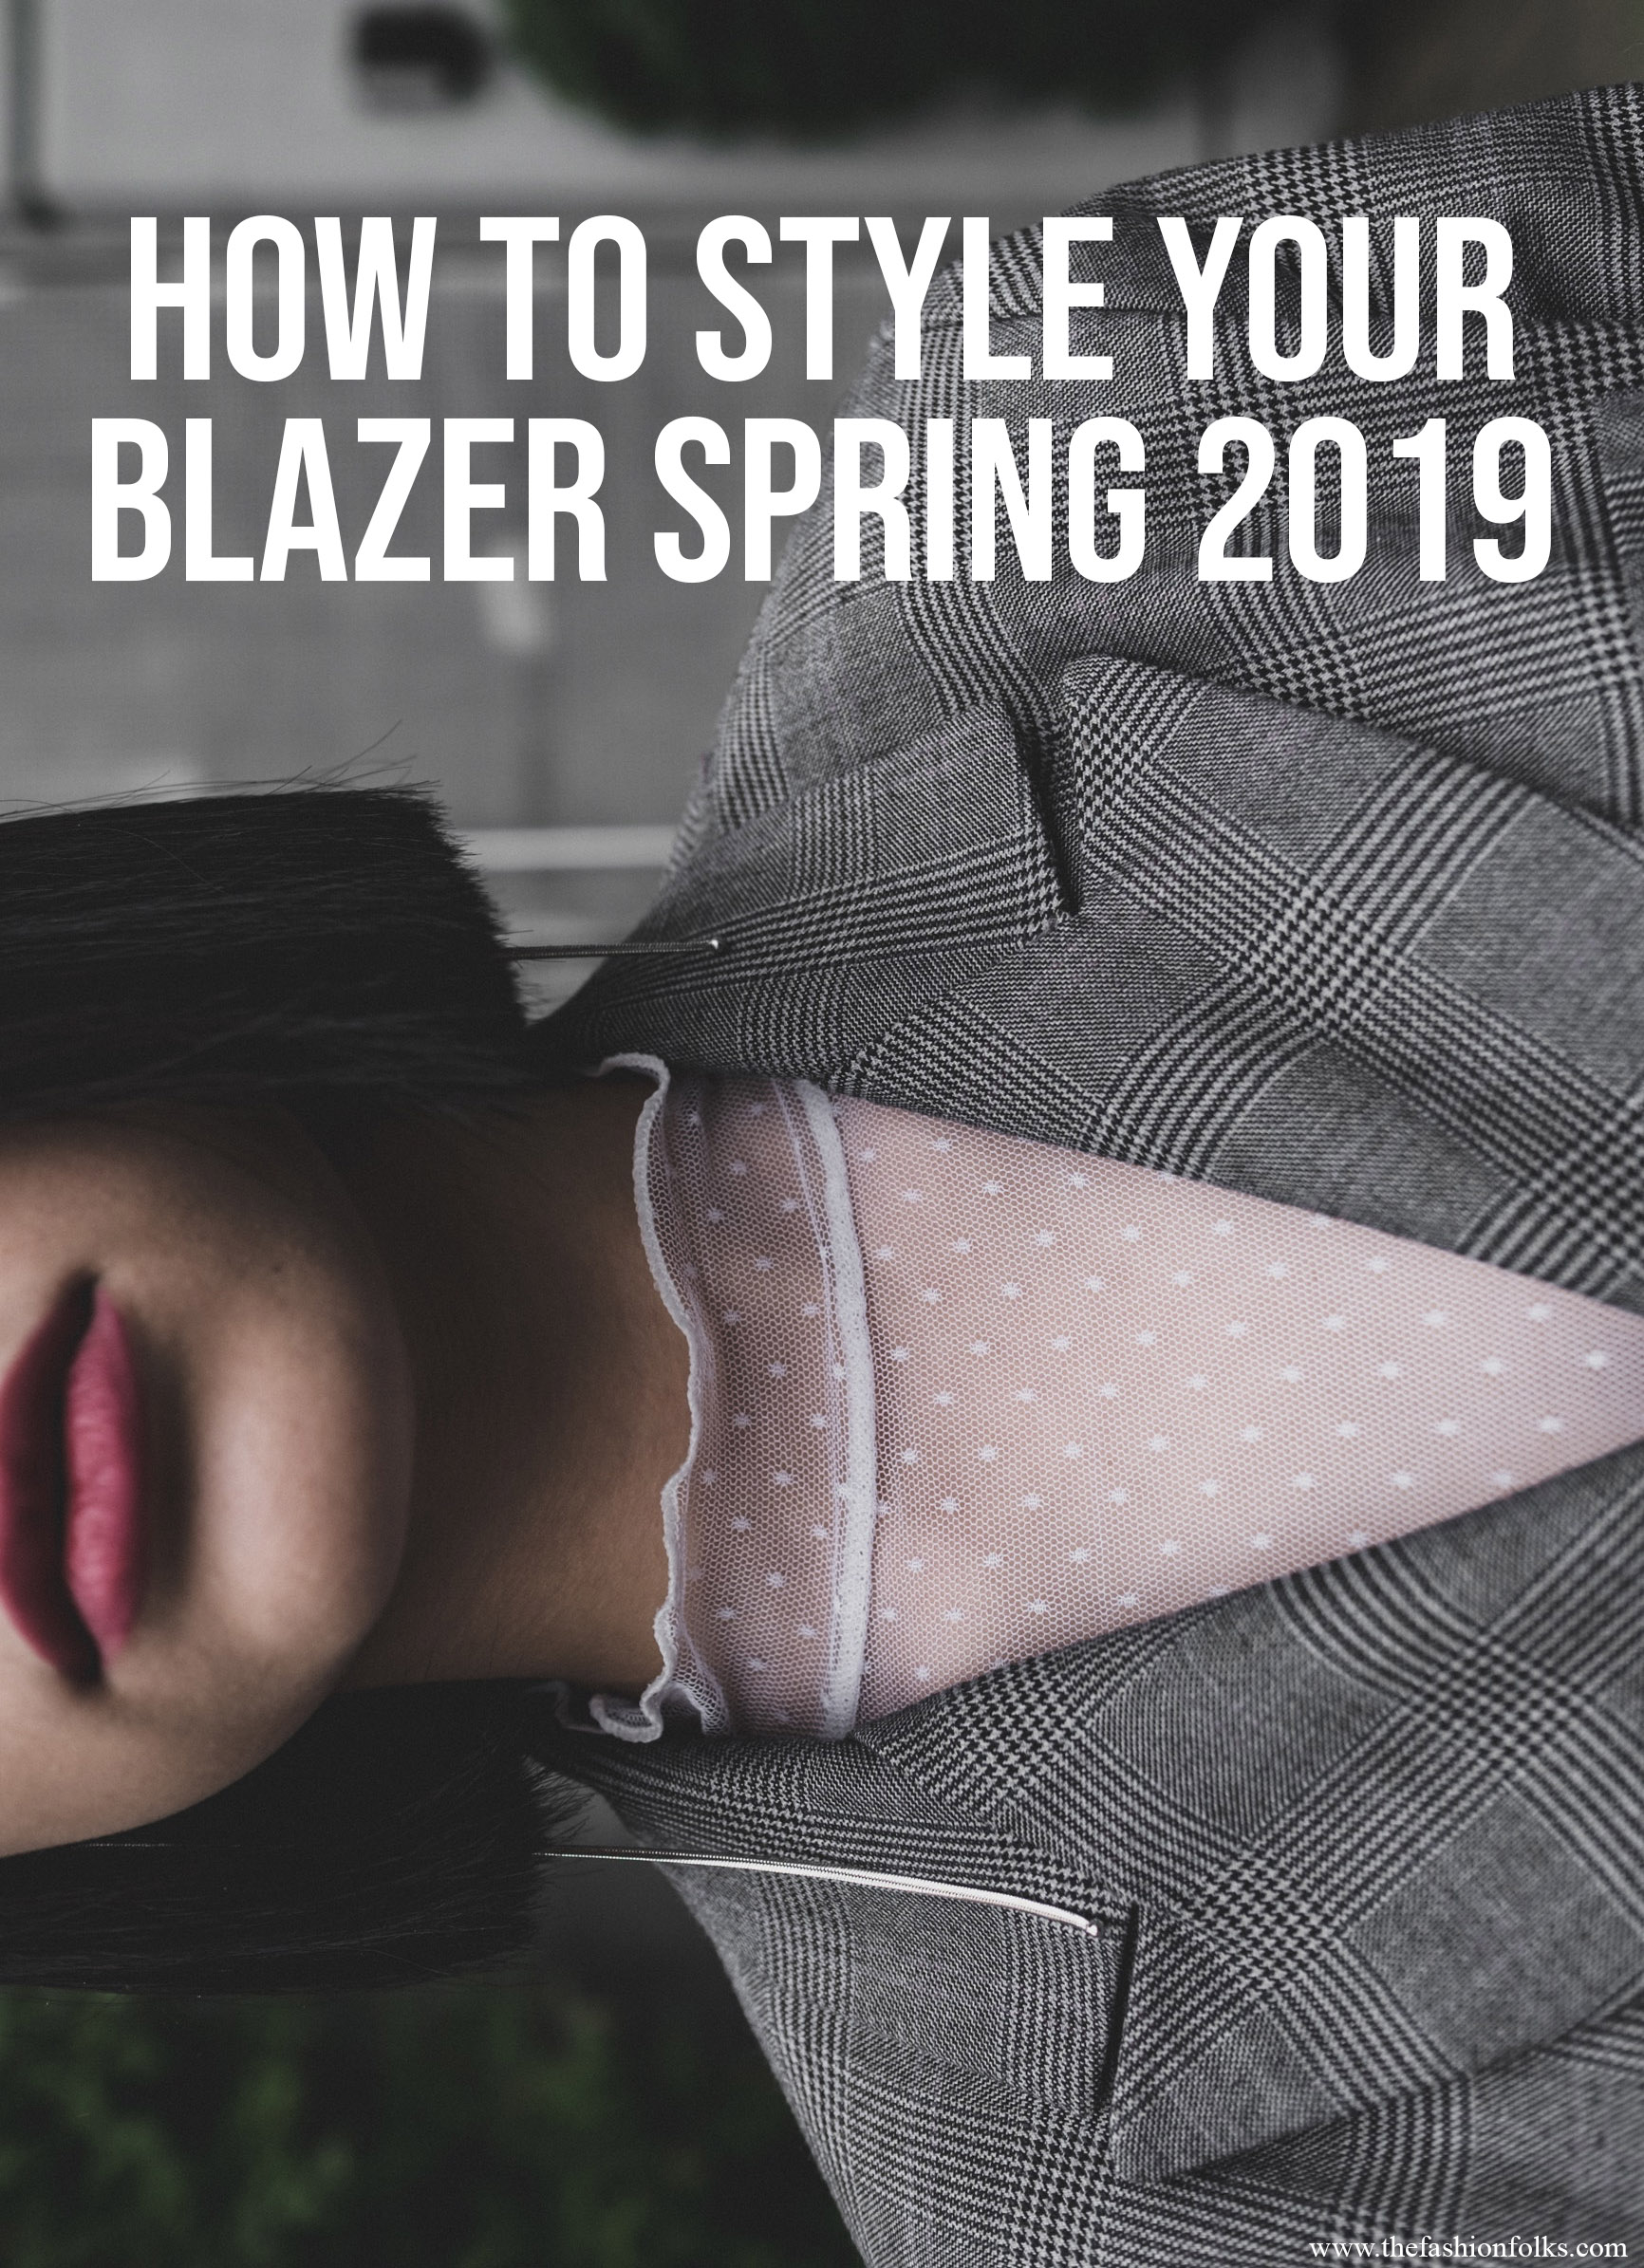 3 Ways You Can Wear Your Blazer Spring 2019